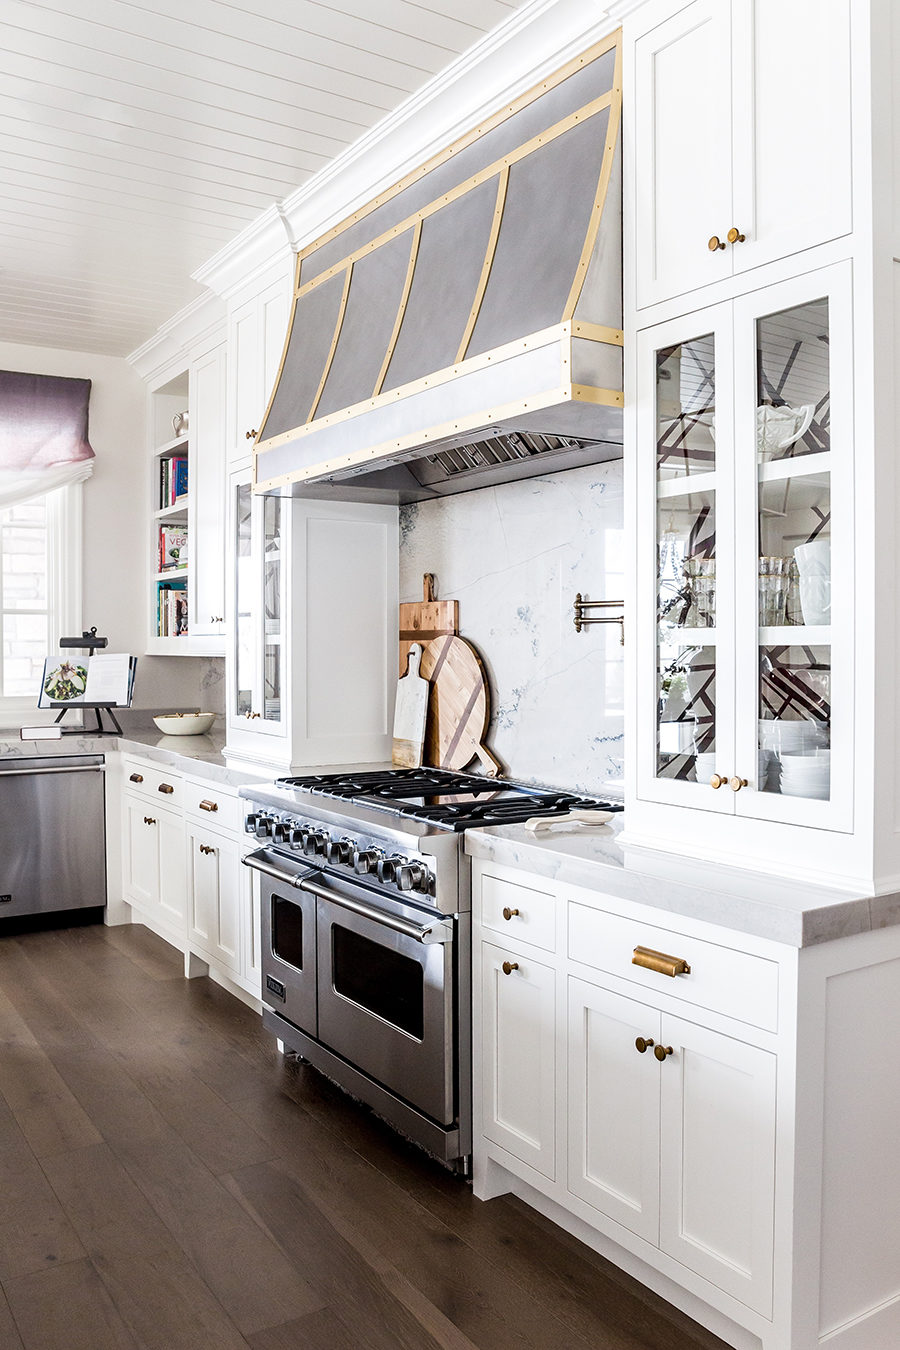 A Luxurious White Kitchen with Double